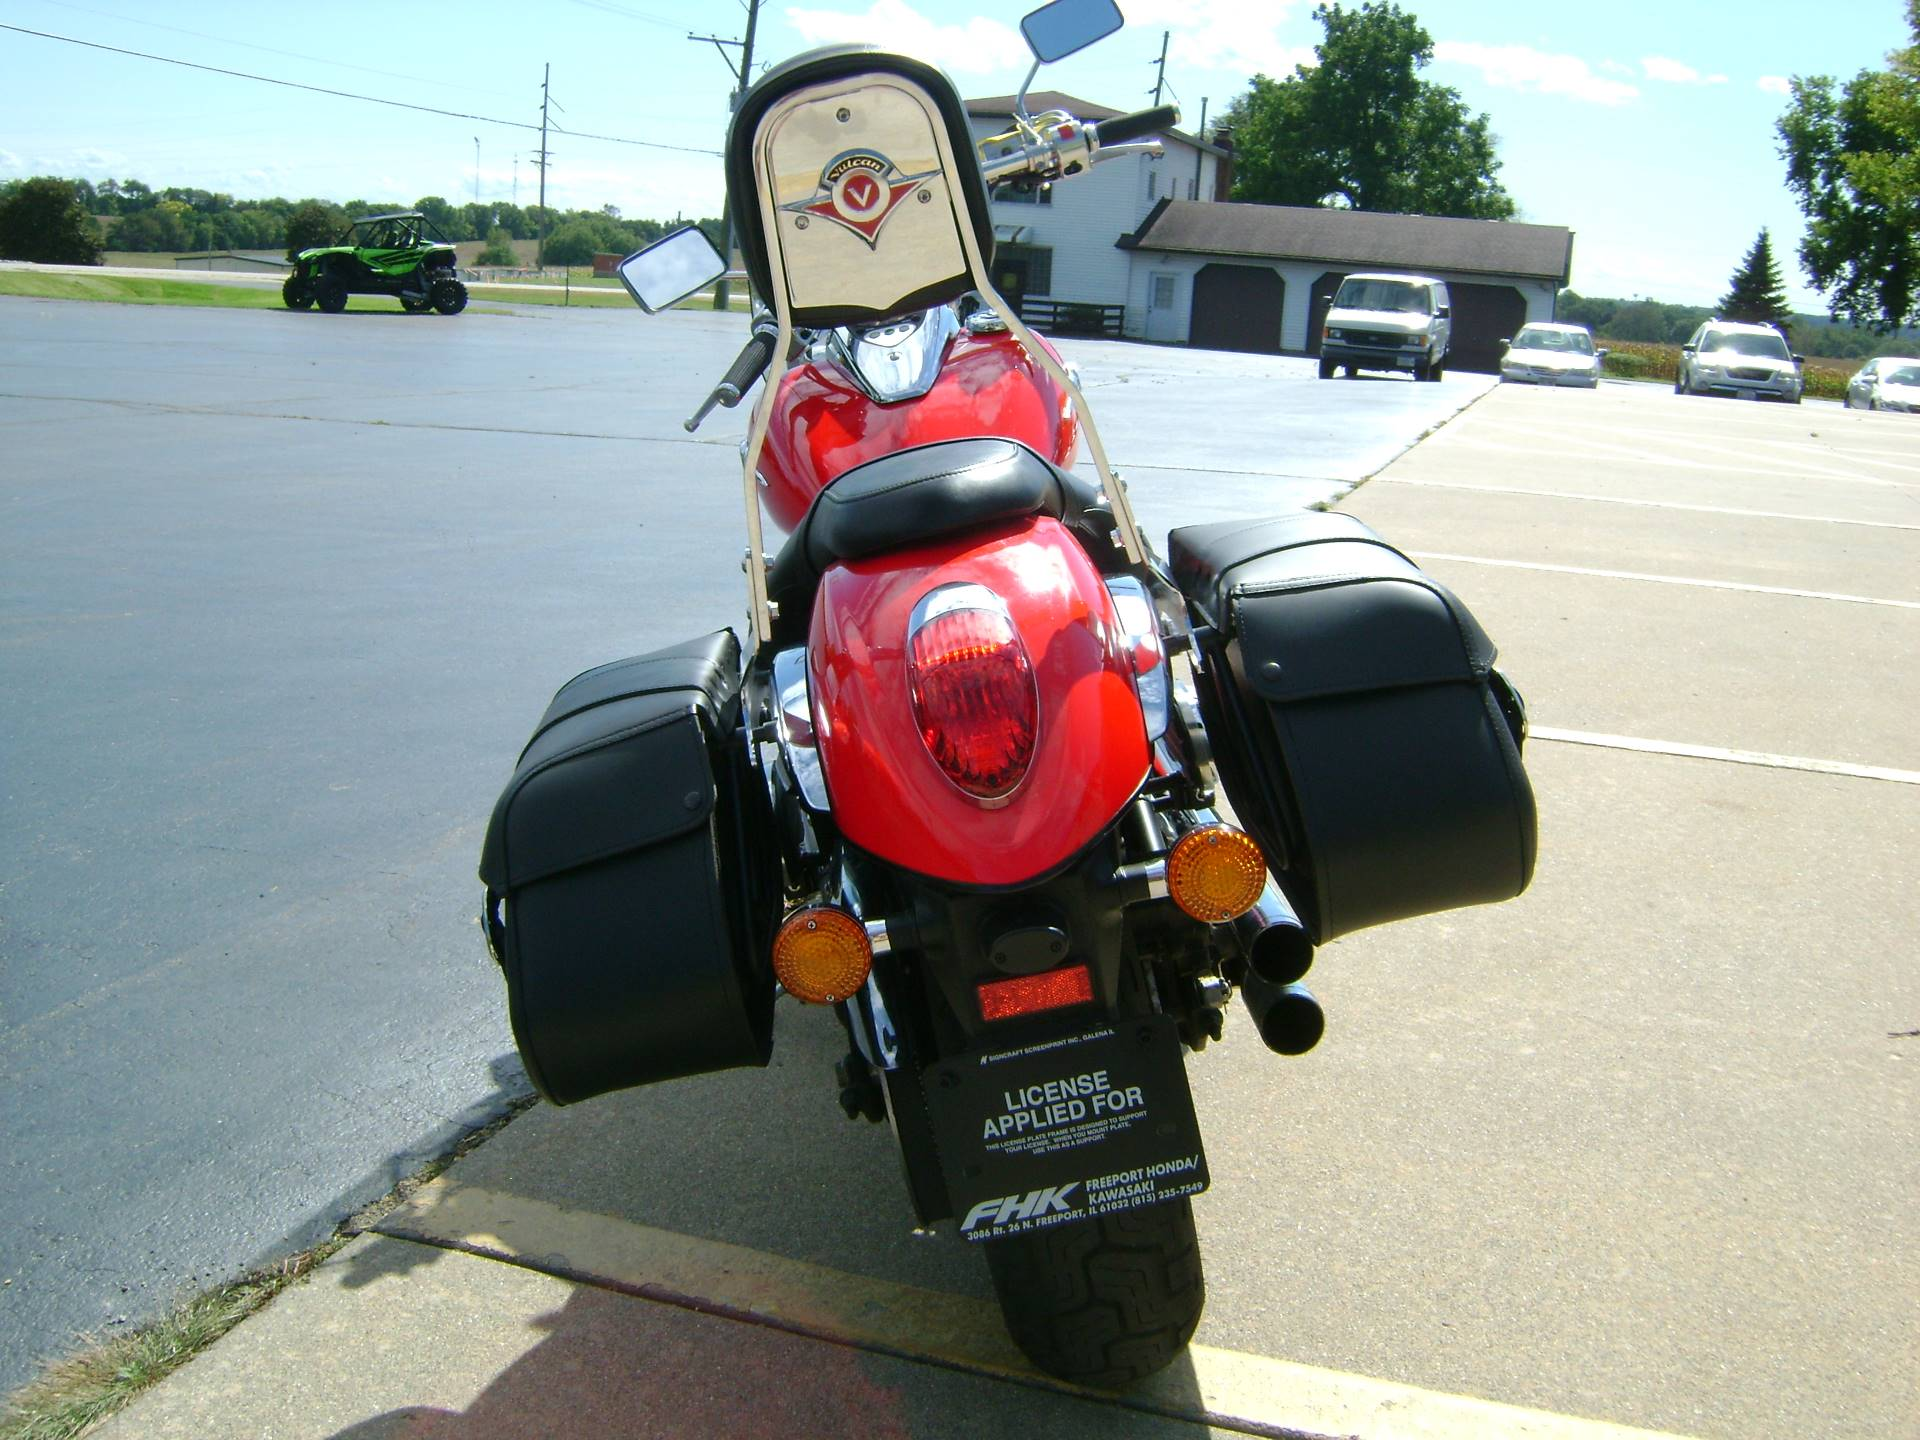 2008 Kawasaki VULCAN 900 CUSTOM in Freeport, Illinois - Photo 6